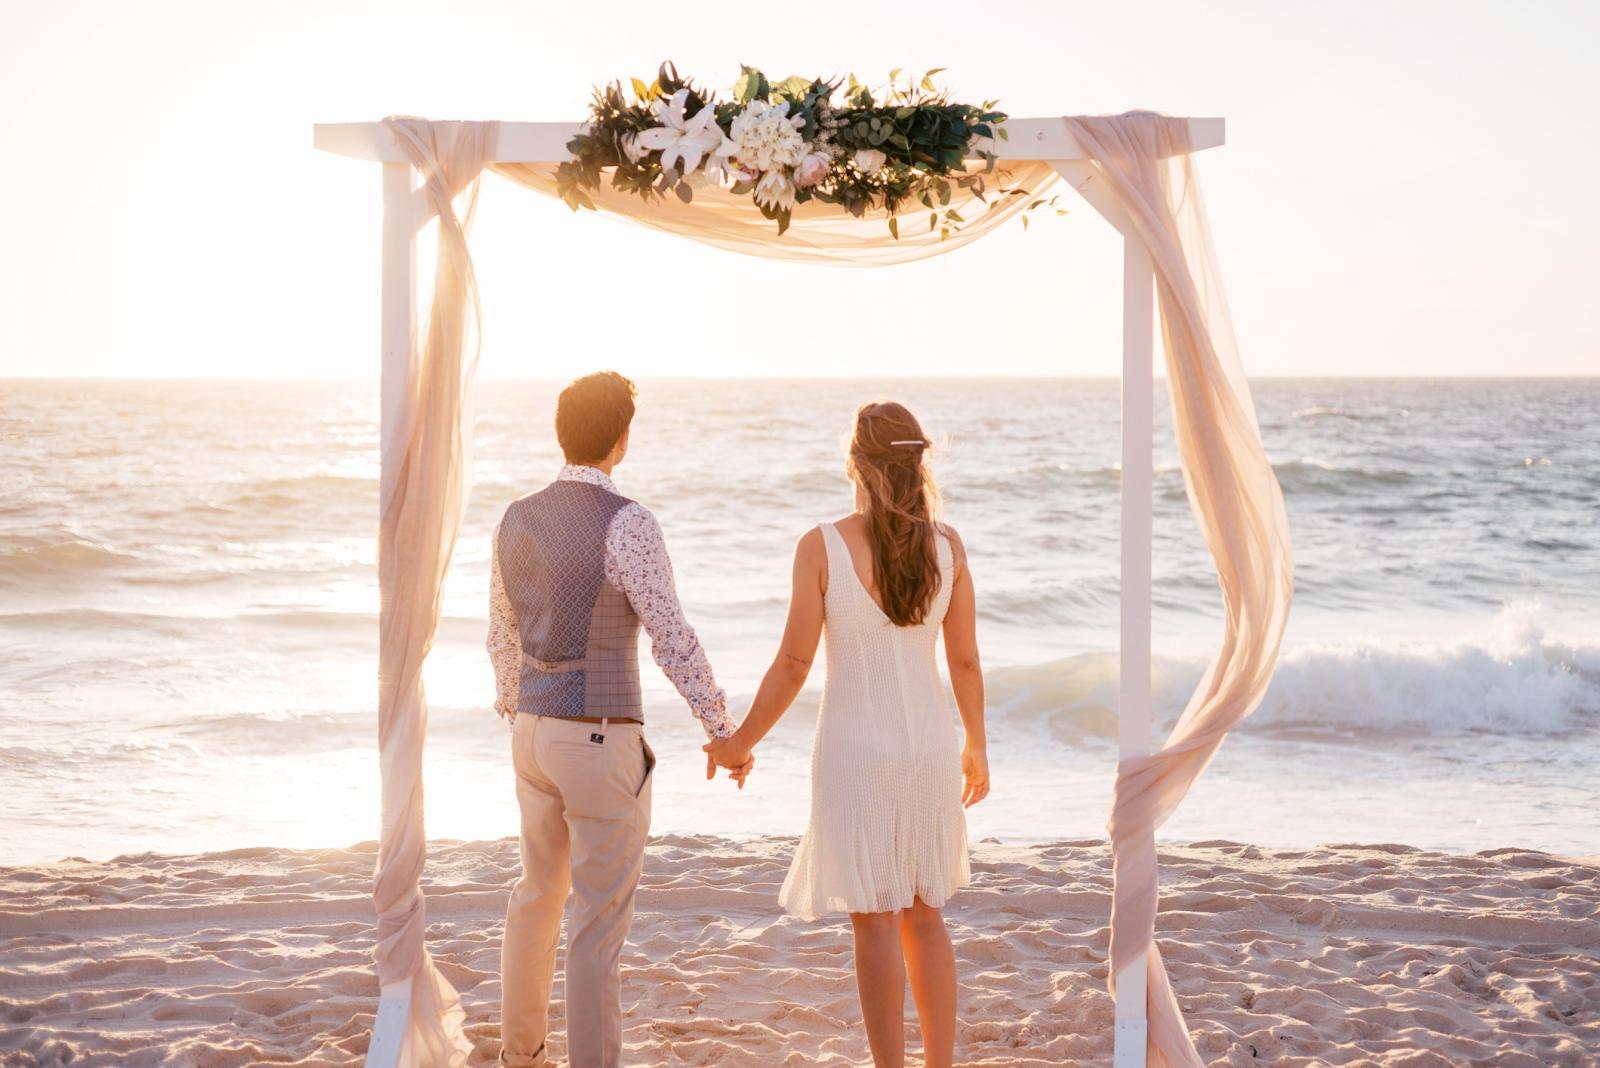 Ideas for Decorating a Wedding Arch | LoveToKnow